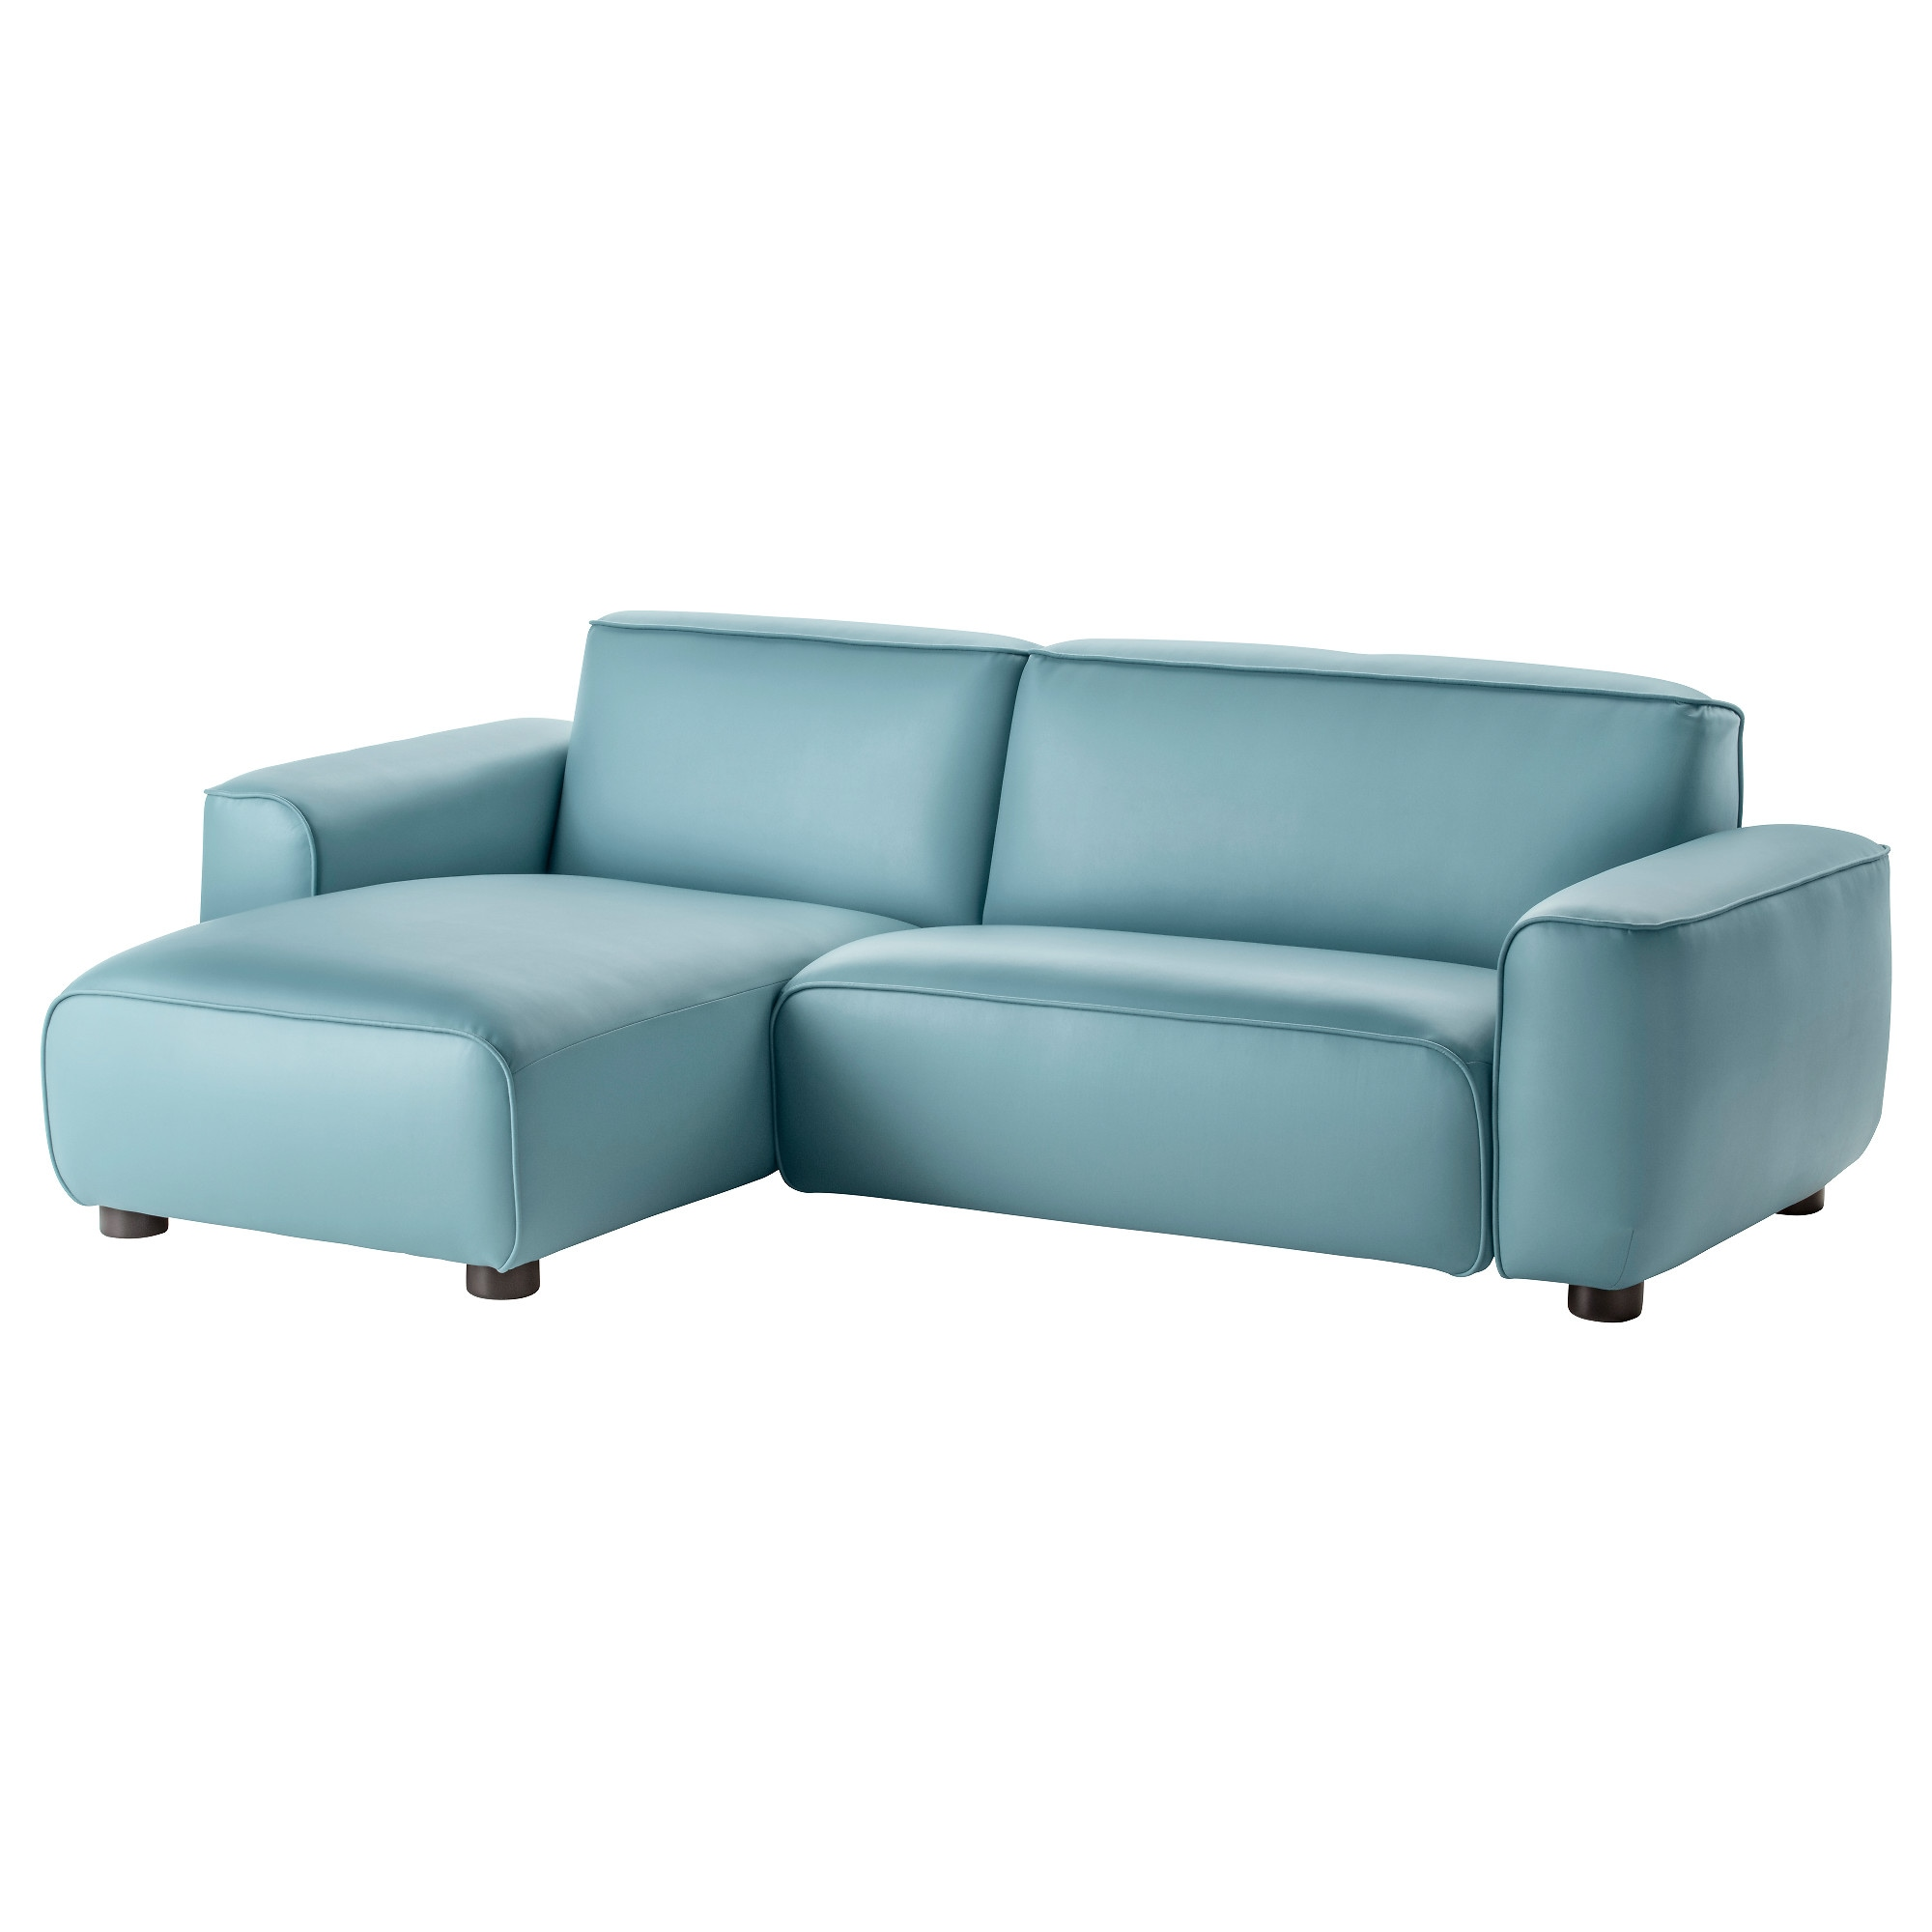 3 2 leather sofa deals - Dagarn Sectional 3 Seat Kimstad Turquoise Width 96 1 2